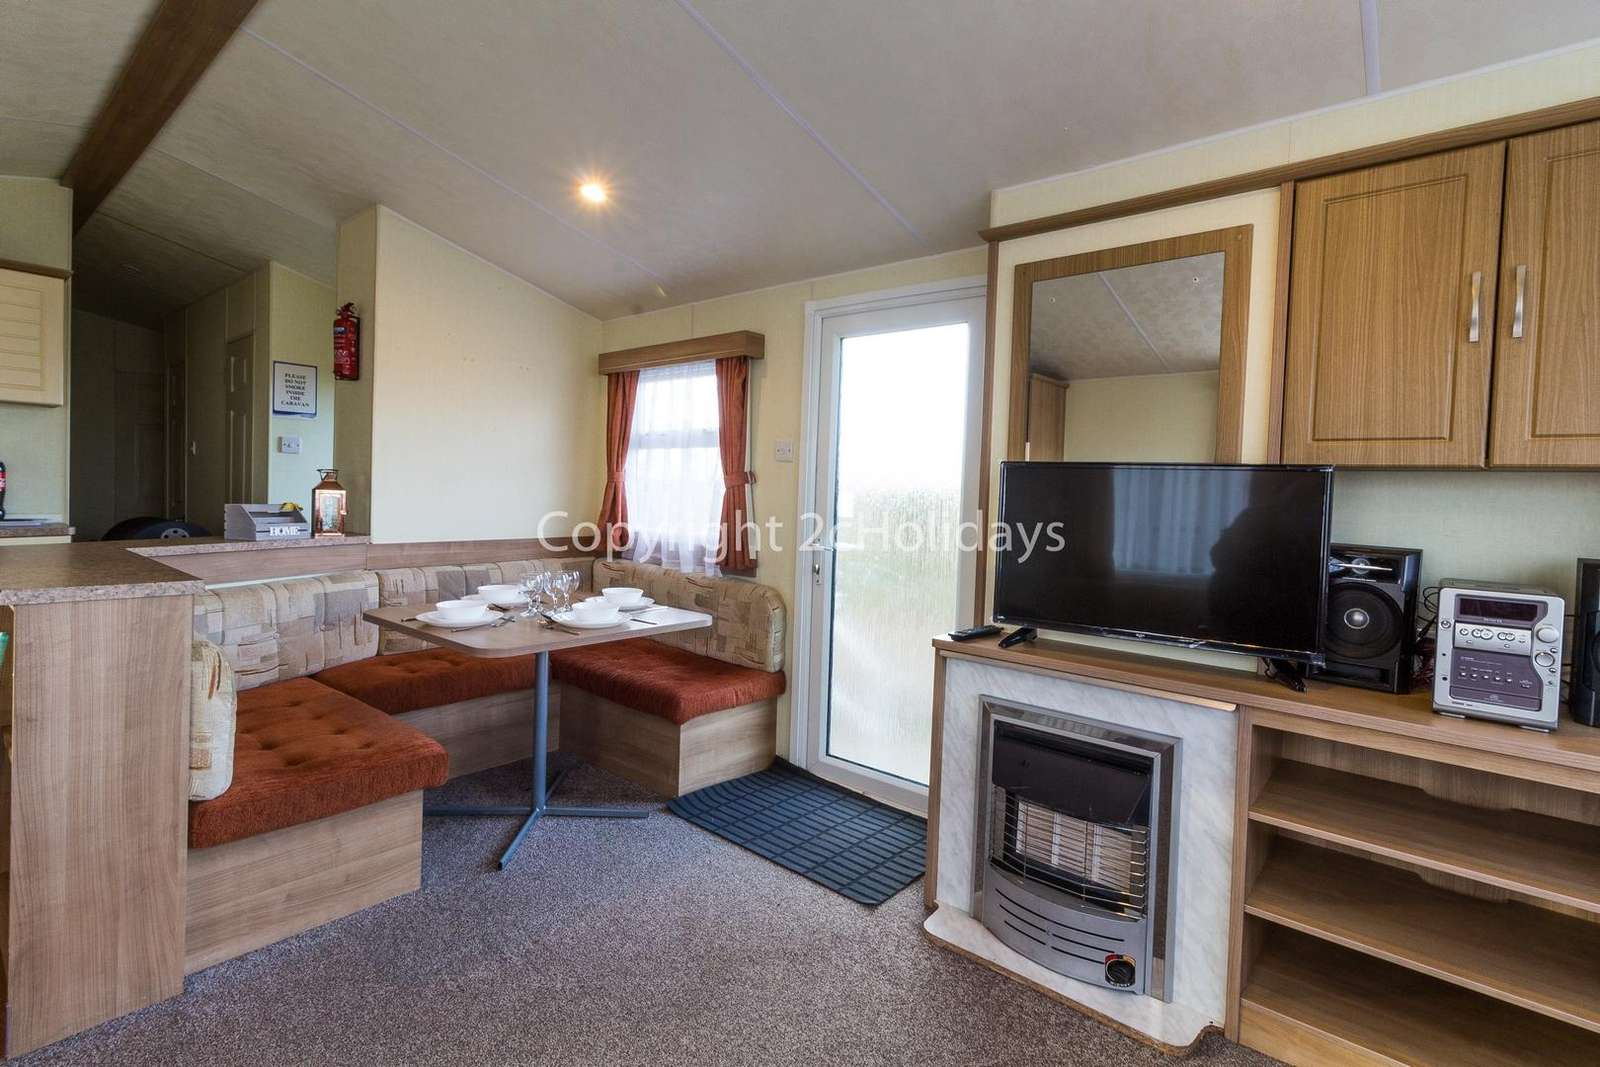 Spacious and open plan kitchen/dining area